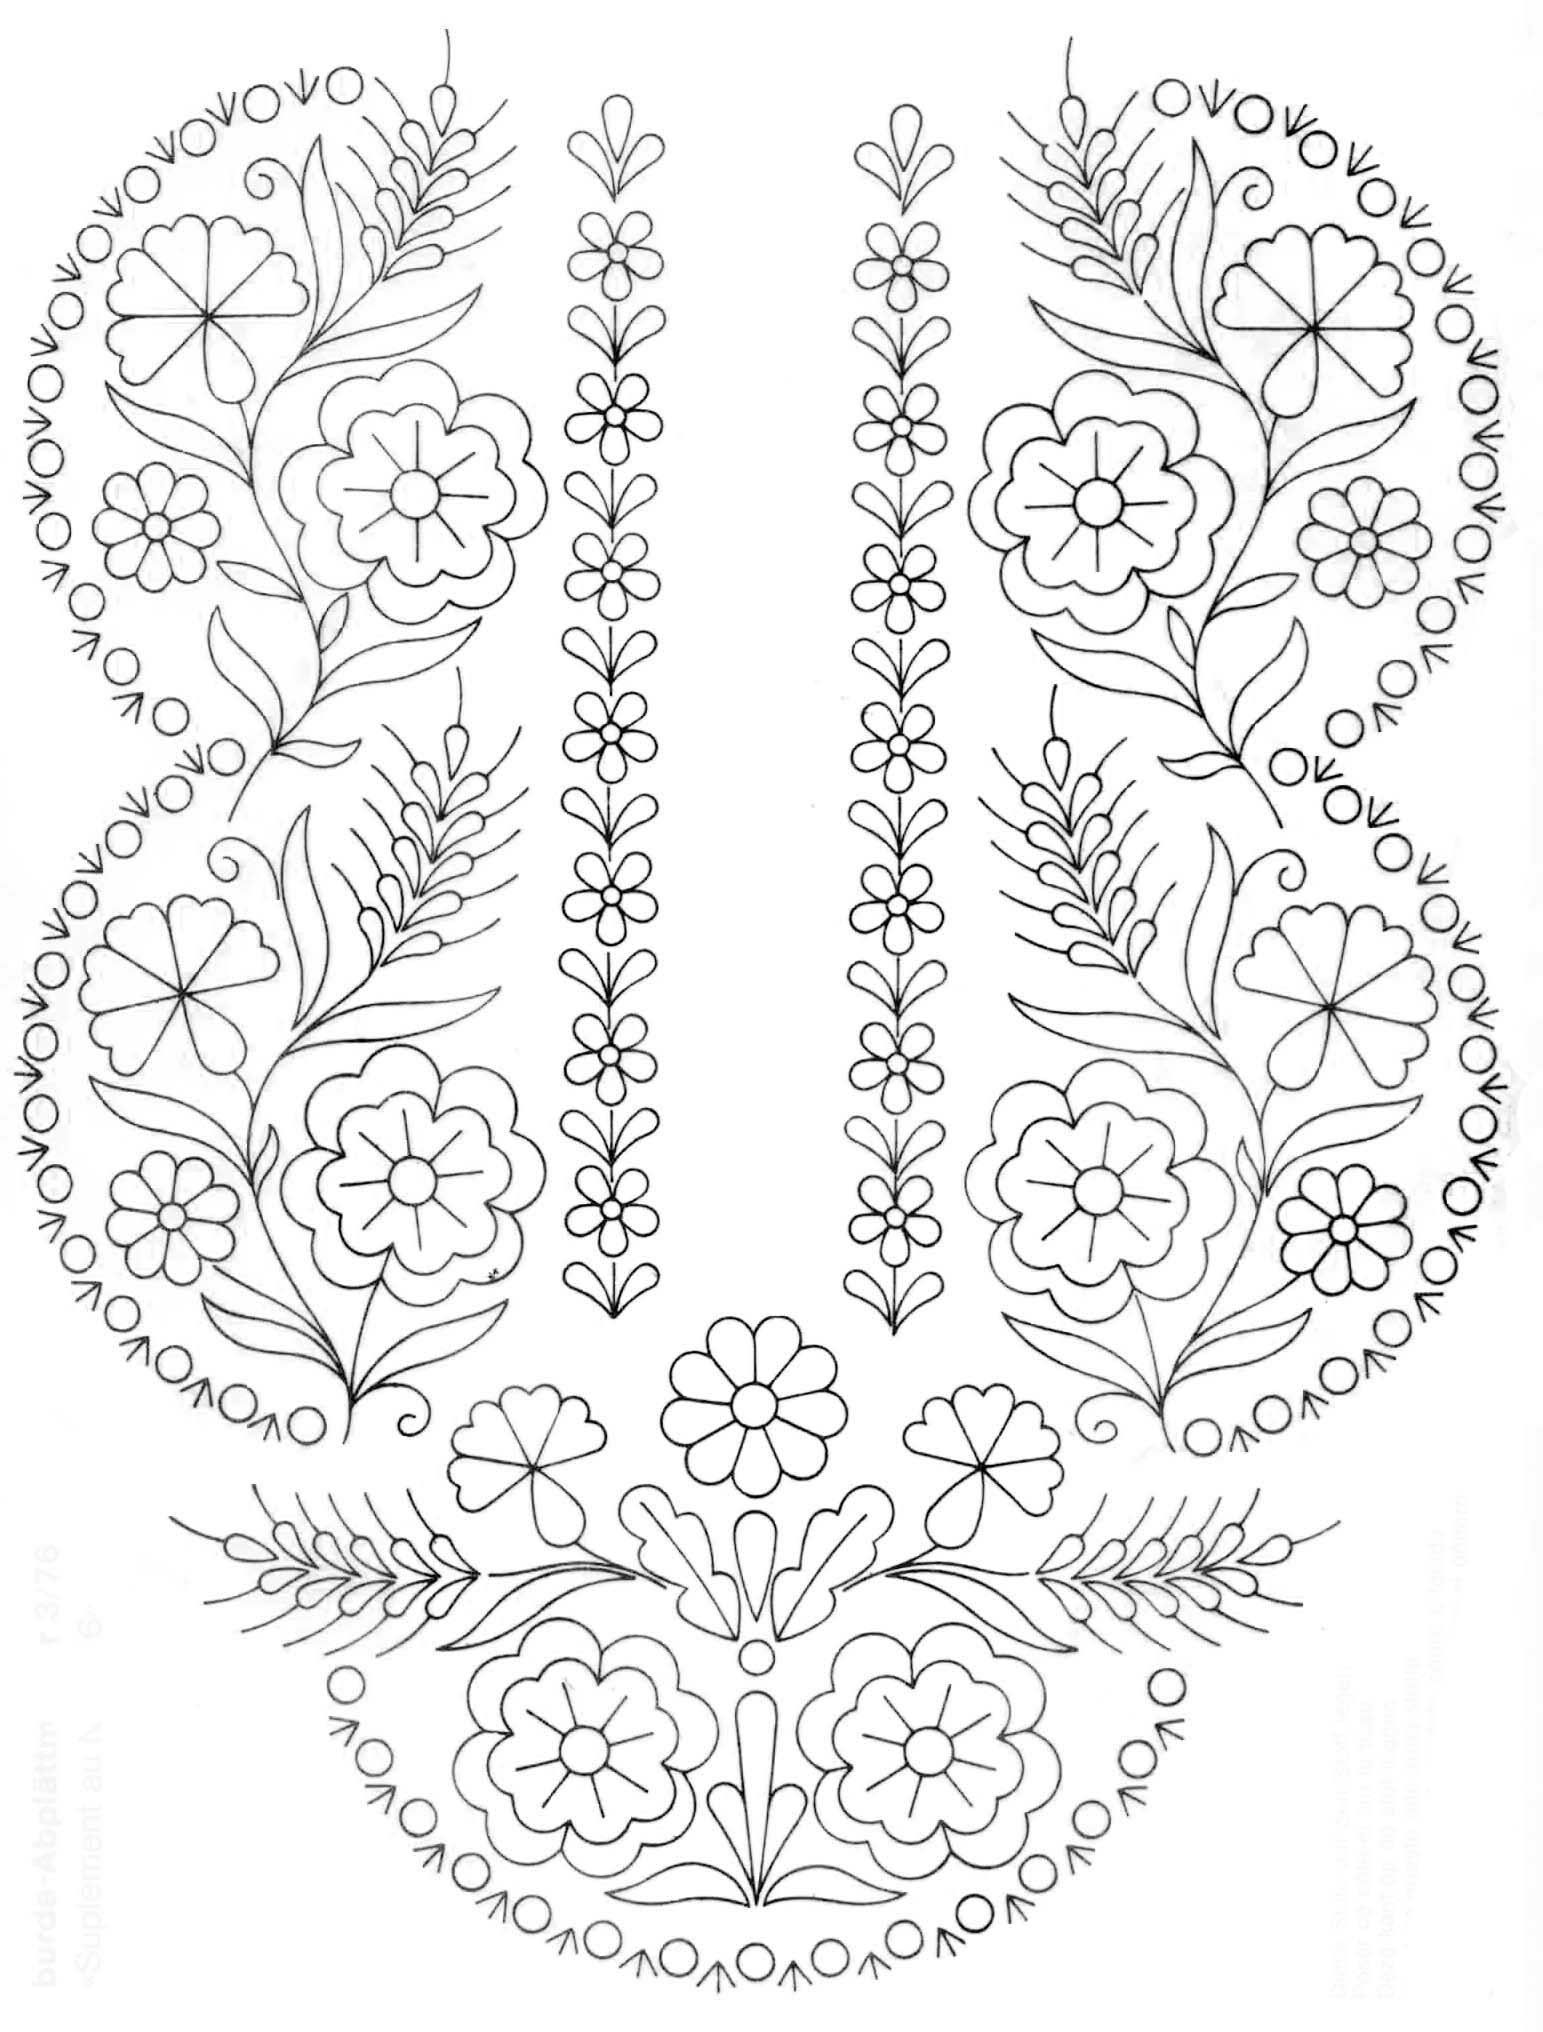 Lovely Folk Art Floral Embroidery Patterns Floral Embroidery Patterns Folk Art Flowers Scandinavian Embroidery